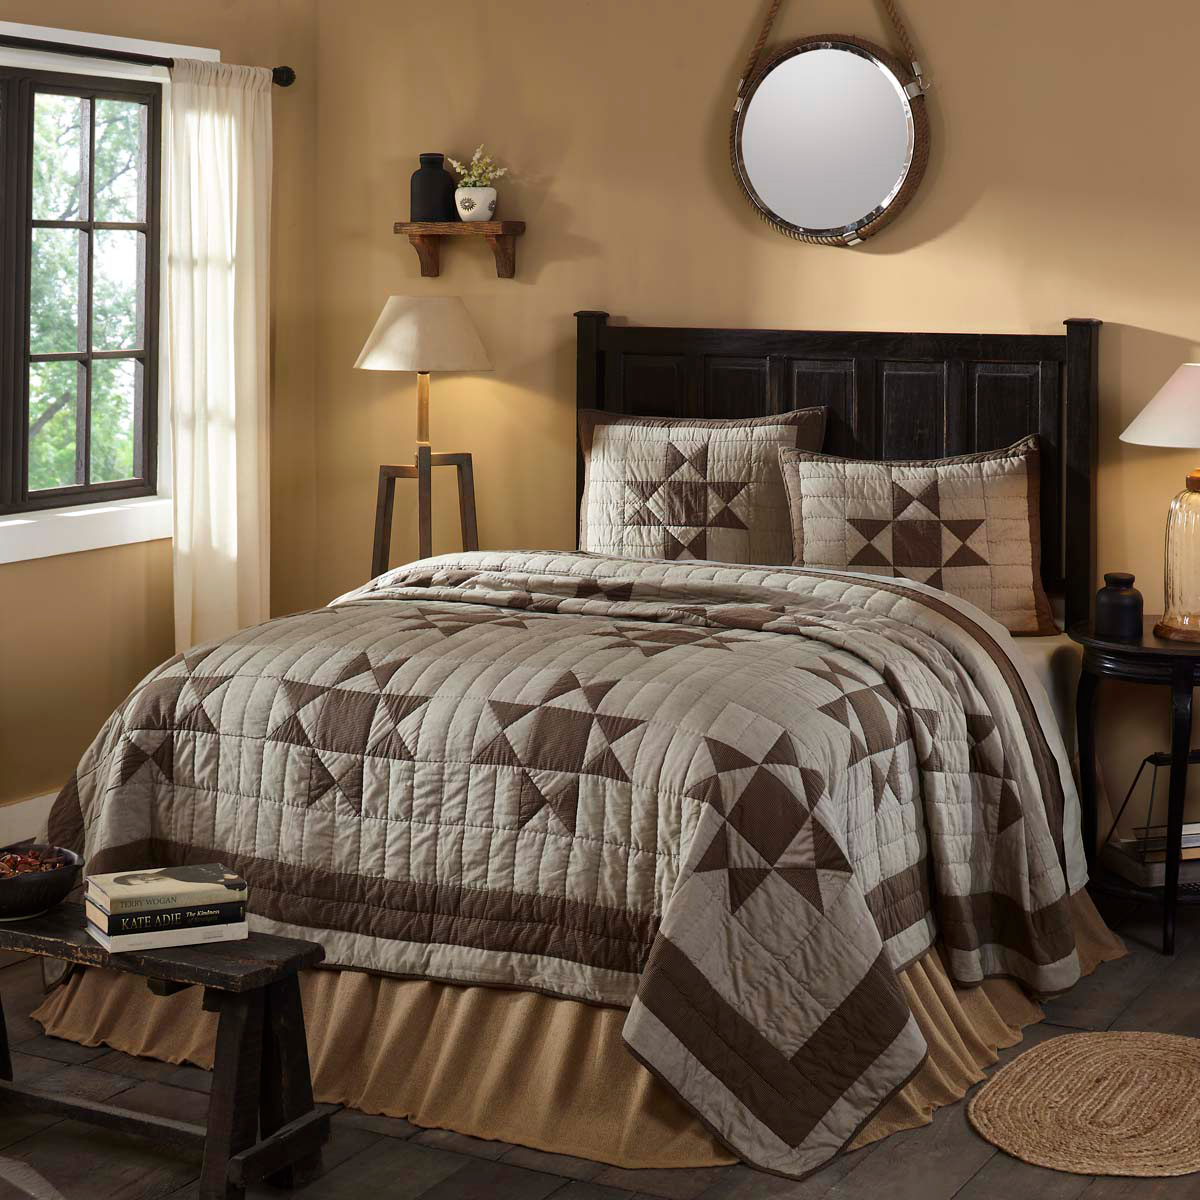 10-pc Ohio Star King Quilt Set - Quilted Shams, Soft Burlap Natural Accessories